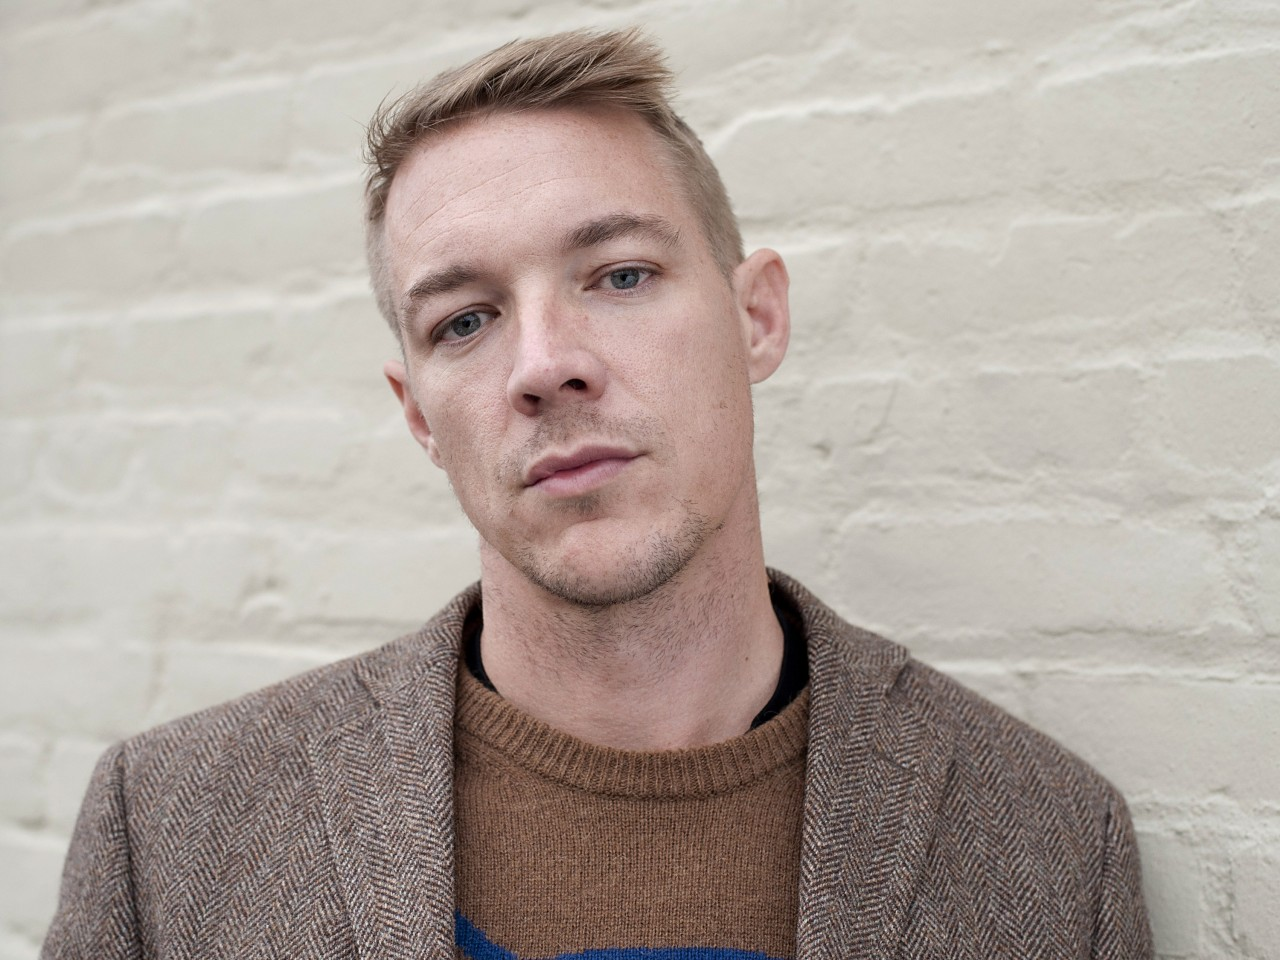 Diplo says he's recorded an album with Skrillex and Arcade Fire members